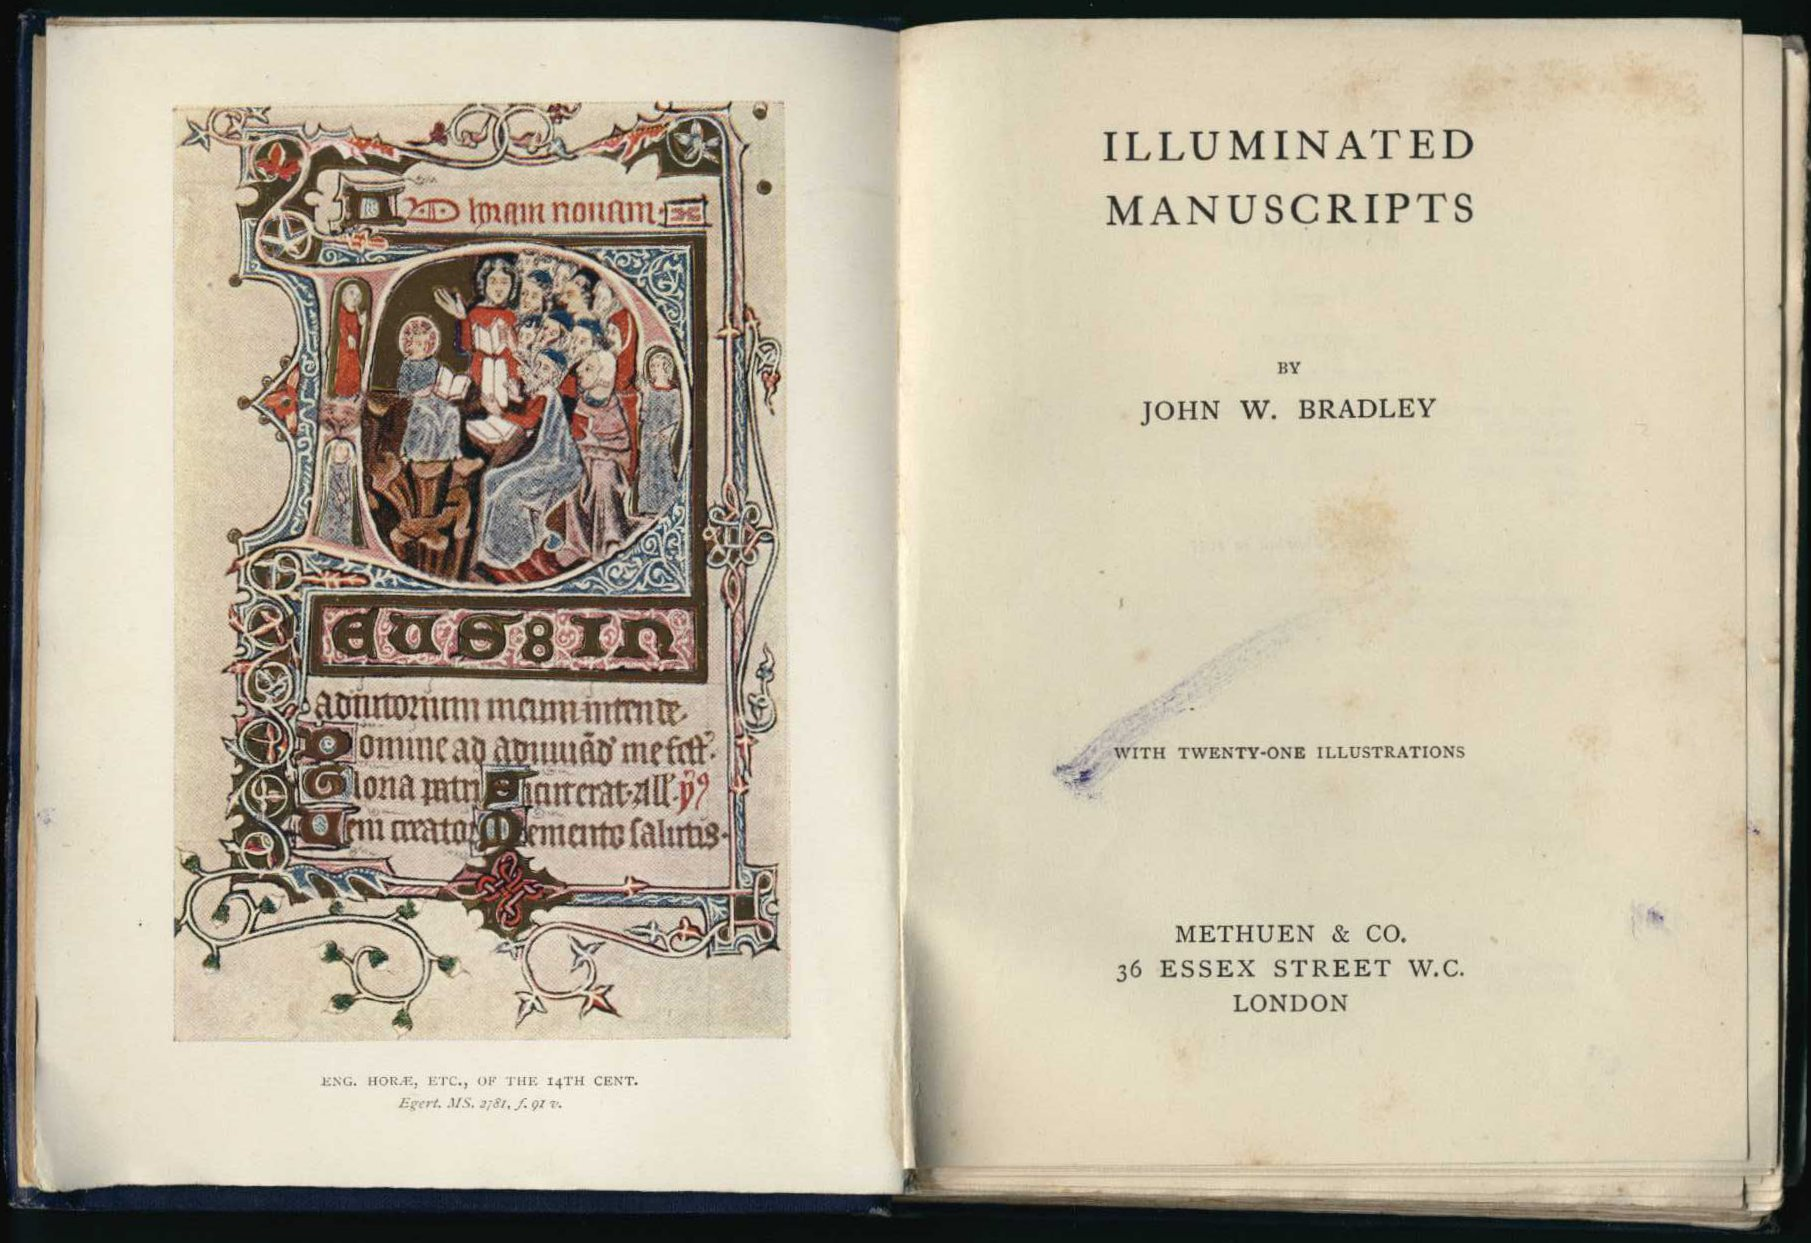 John W. Bradley. Illuminated manuscripts. London: Methuen, 1905.